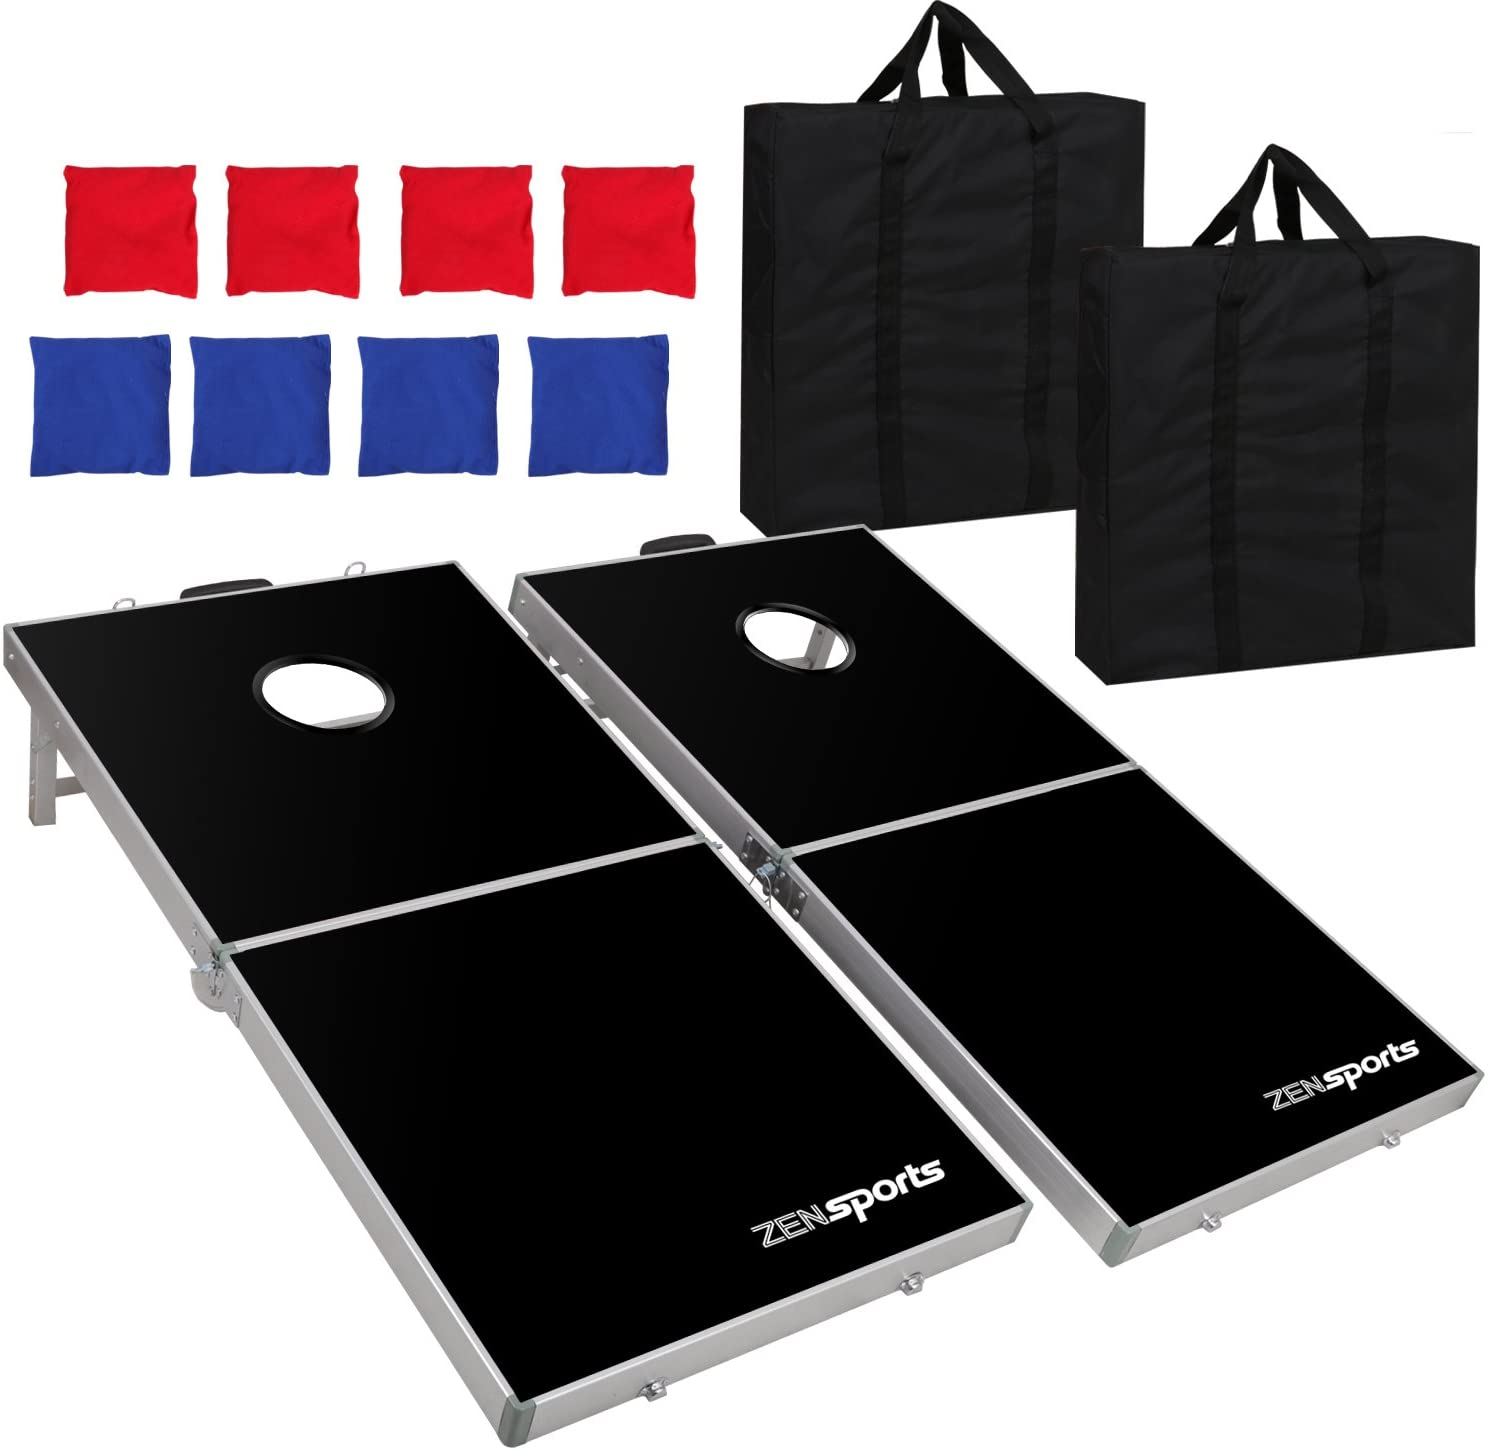 ZENY Portable 4' x 2' Aluminum Cornhole Game Set